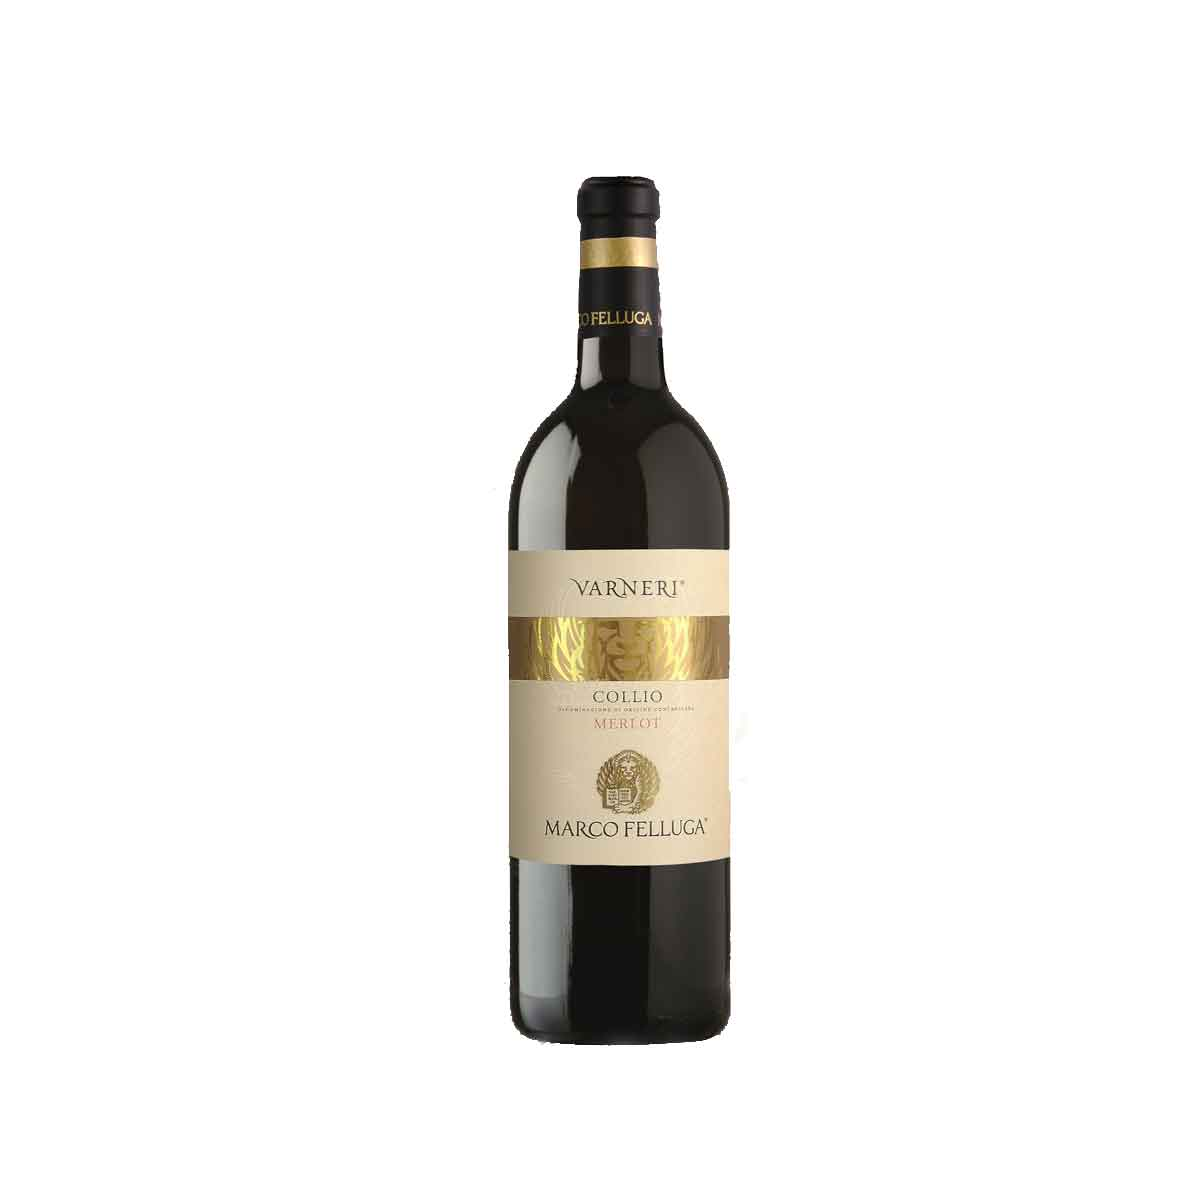 COLLIO MERLOT VARNERI, Marco Felluga - Privilege Wine